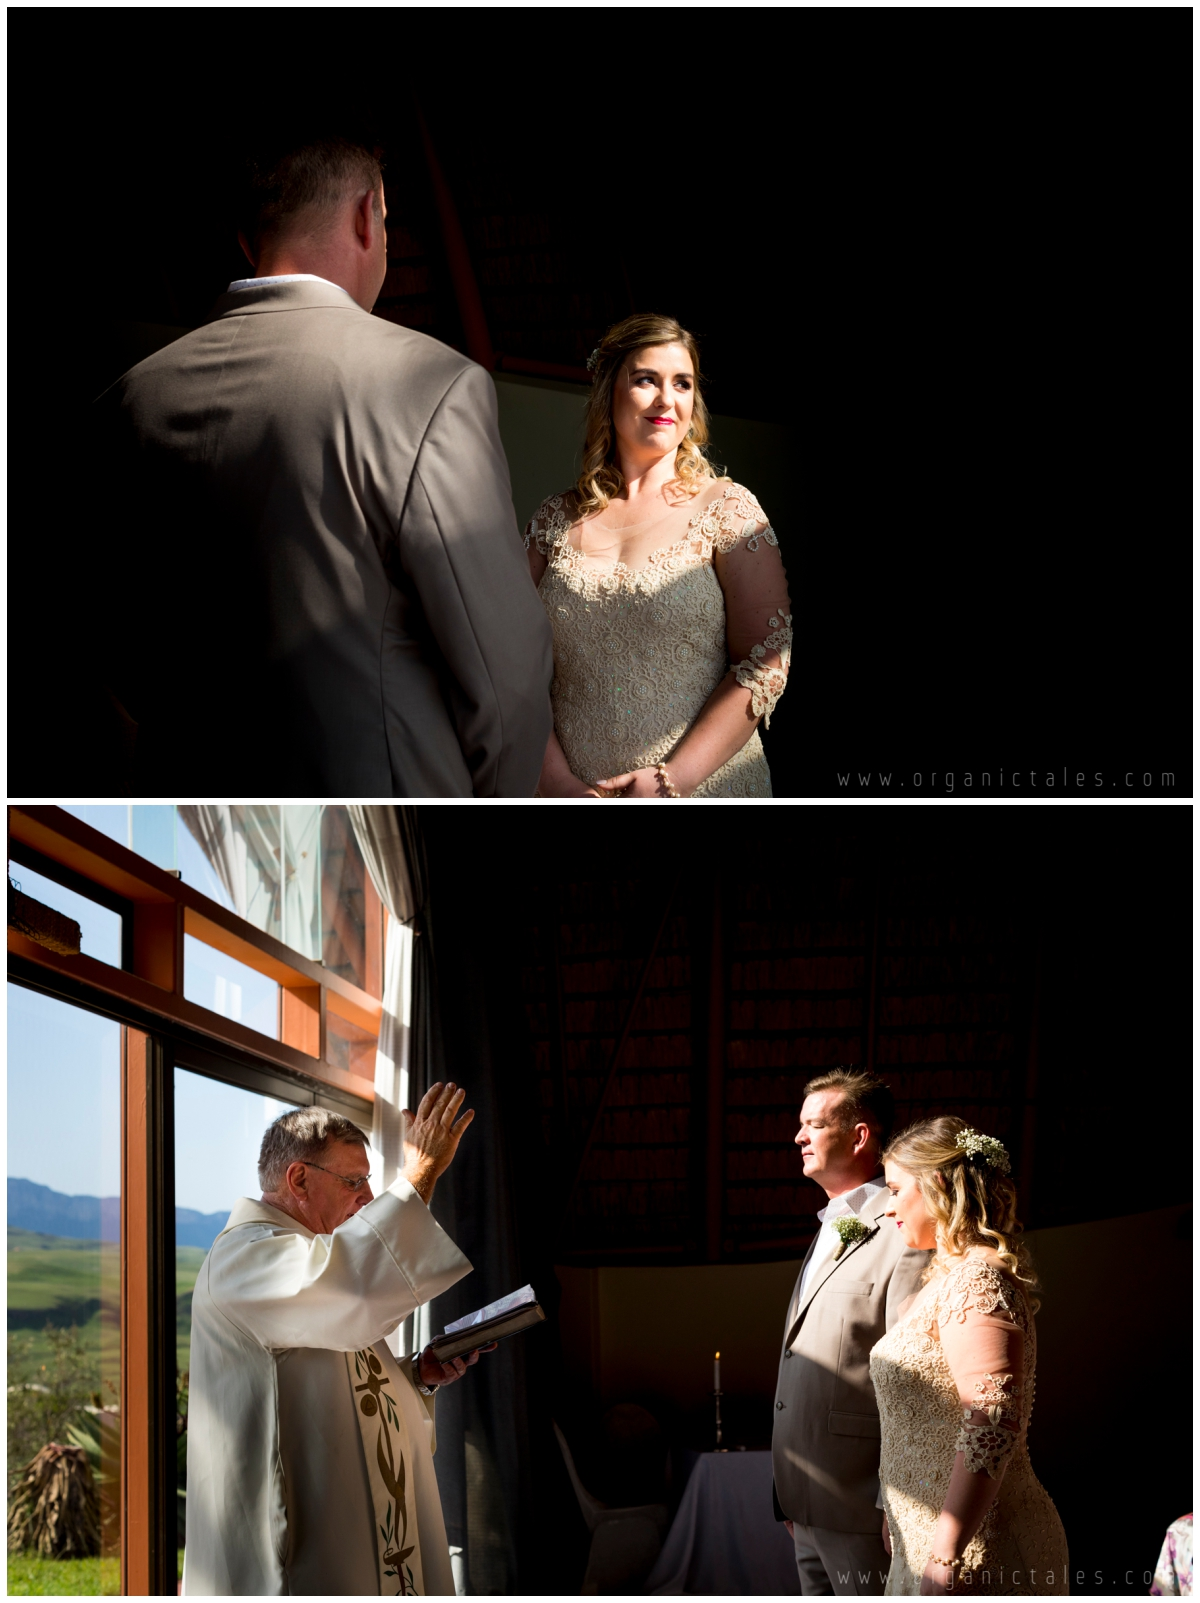 Cathedral Peak Wedding - Organictales Photography